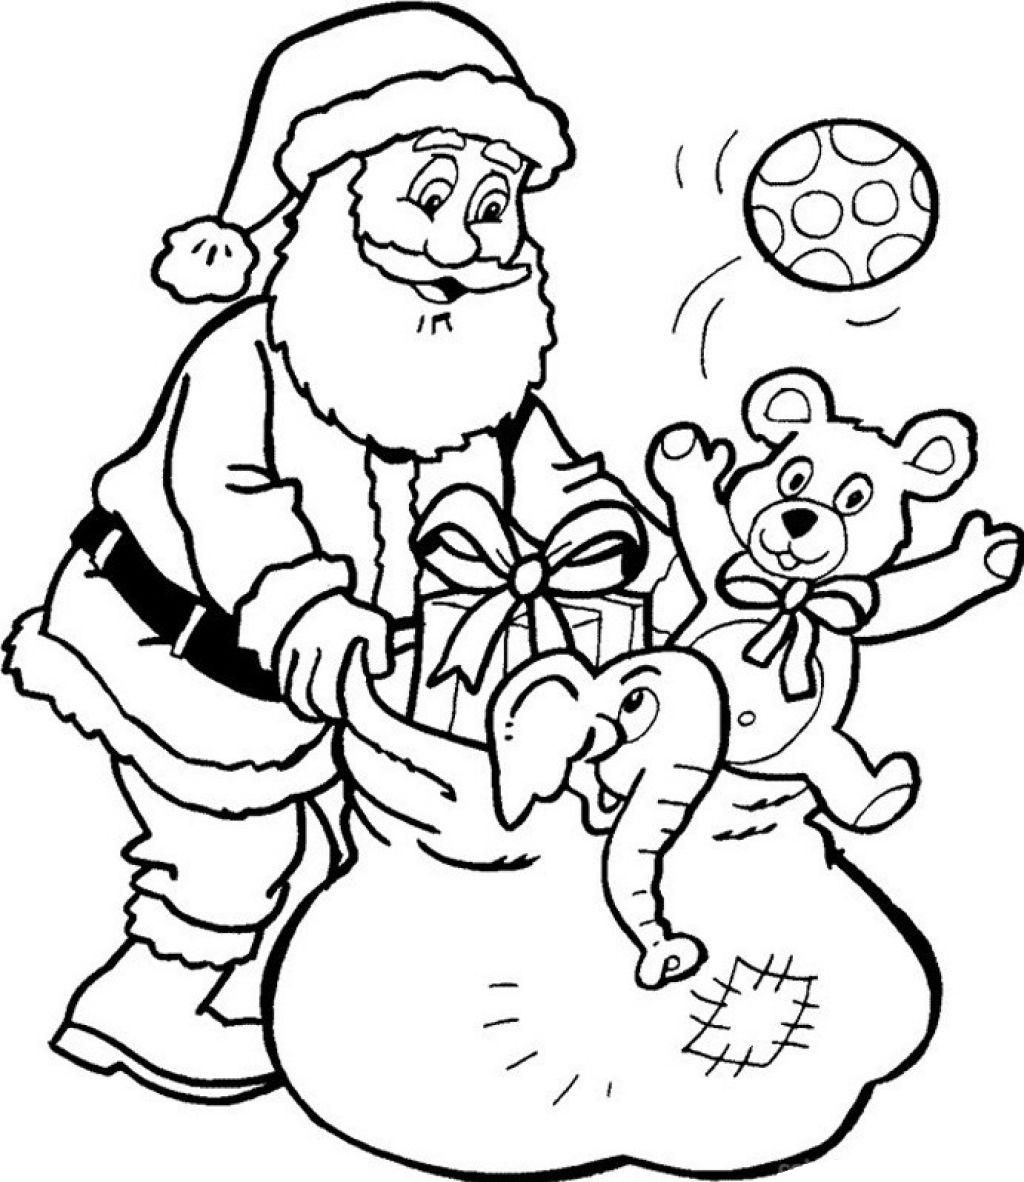 santa claus coloring pages 03 santa coloring pages printable christmas coloring pages coloring pictures santa claus coloring pages 03 santa